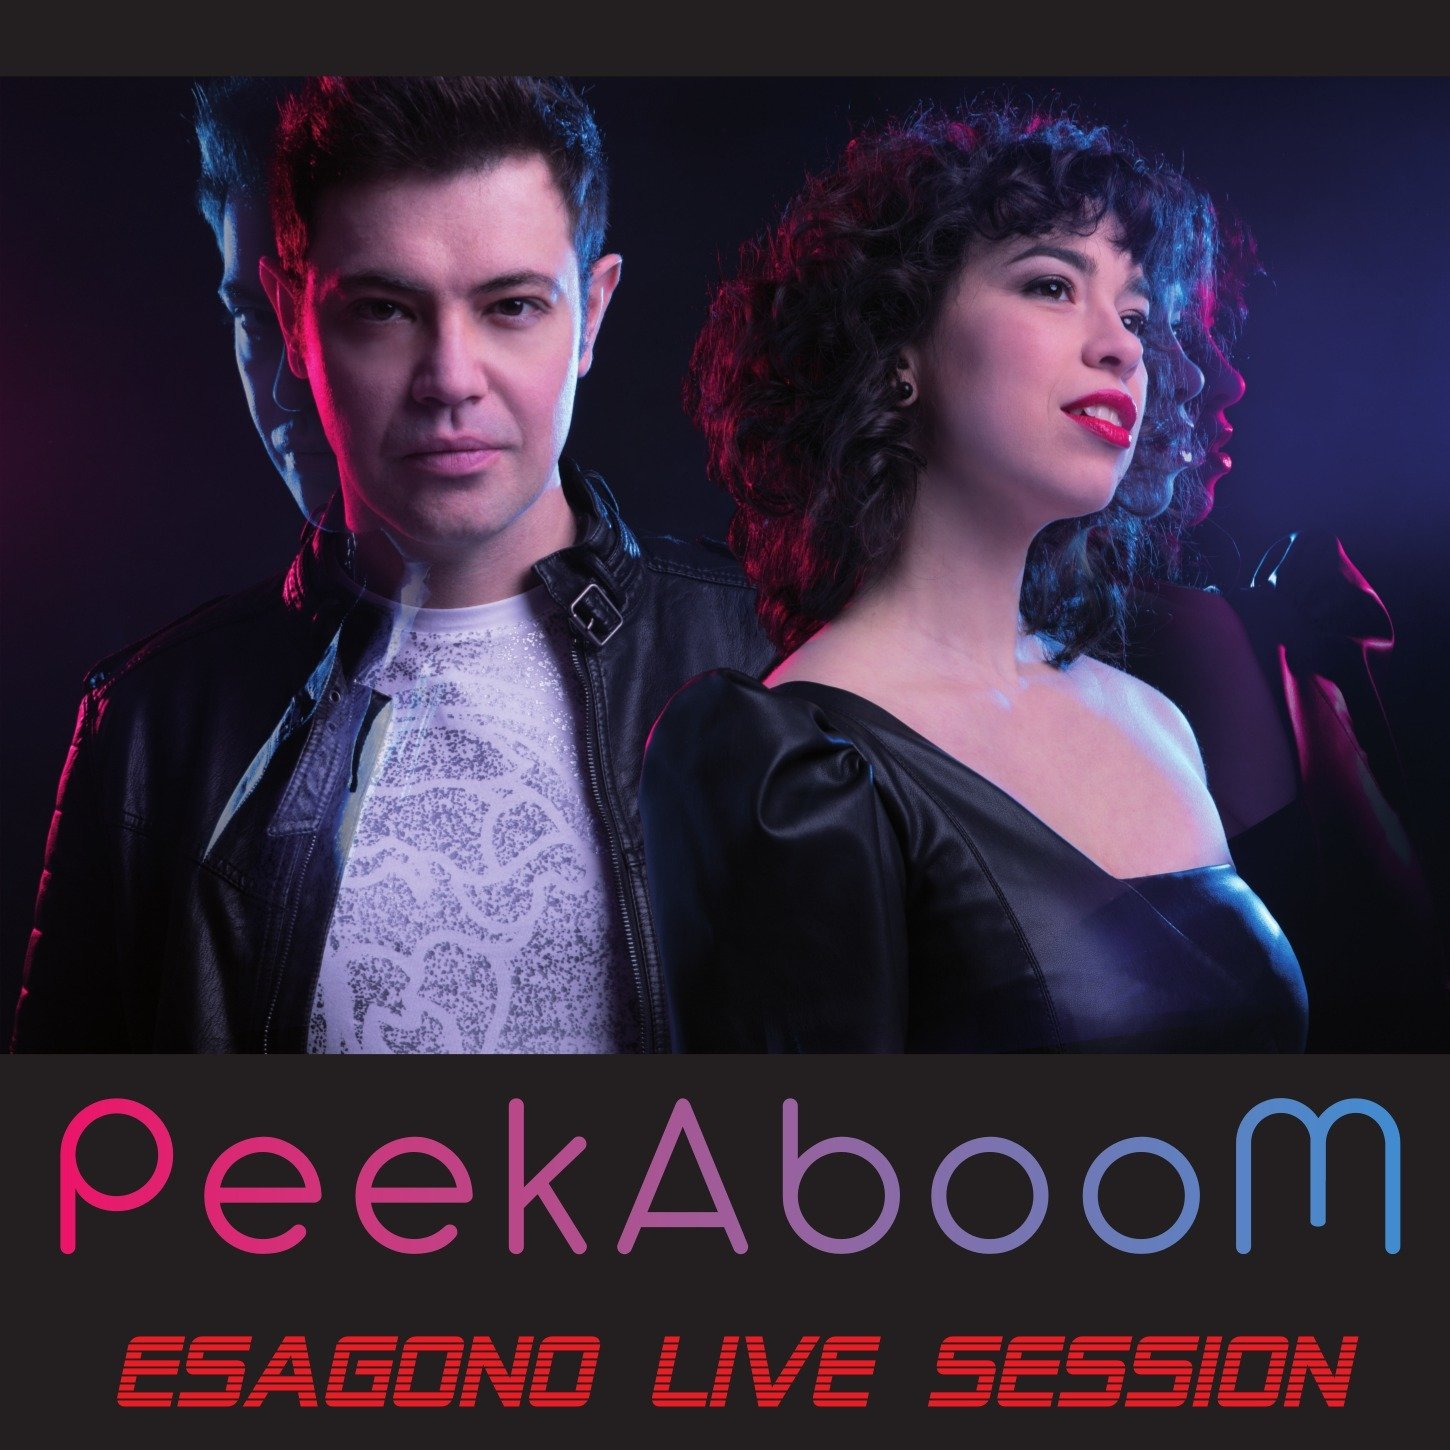 Esagono Live Session - Digital Download MP3 + PDF 00003